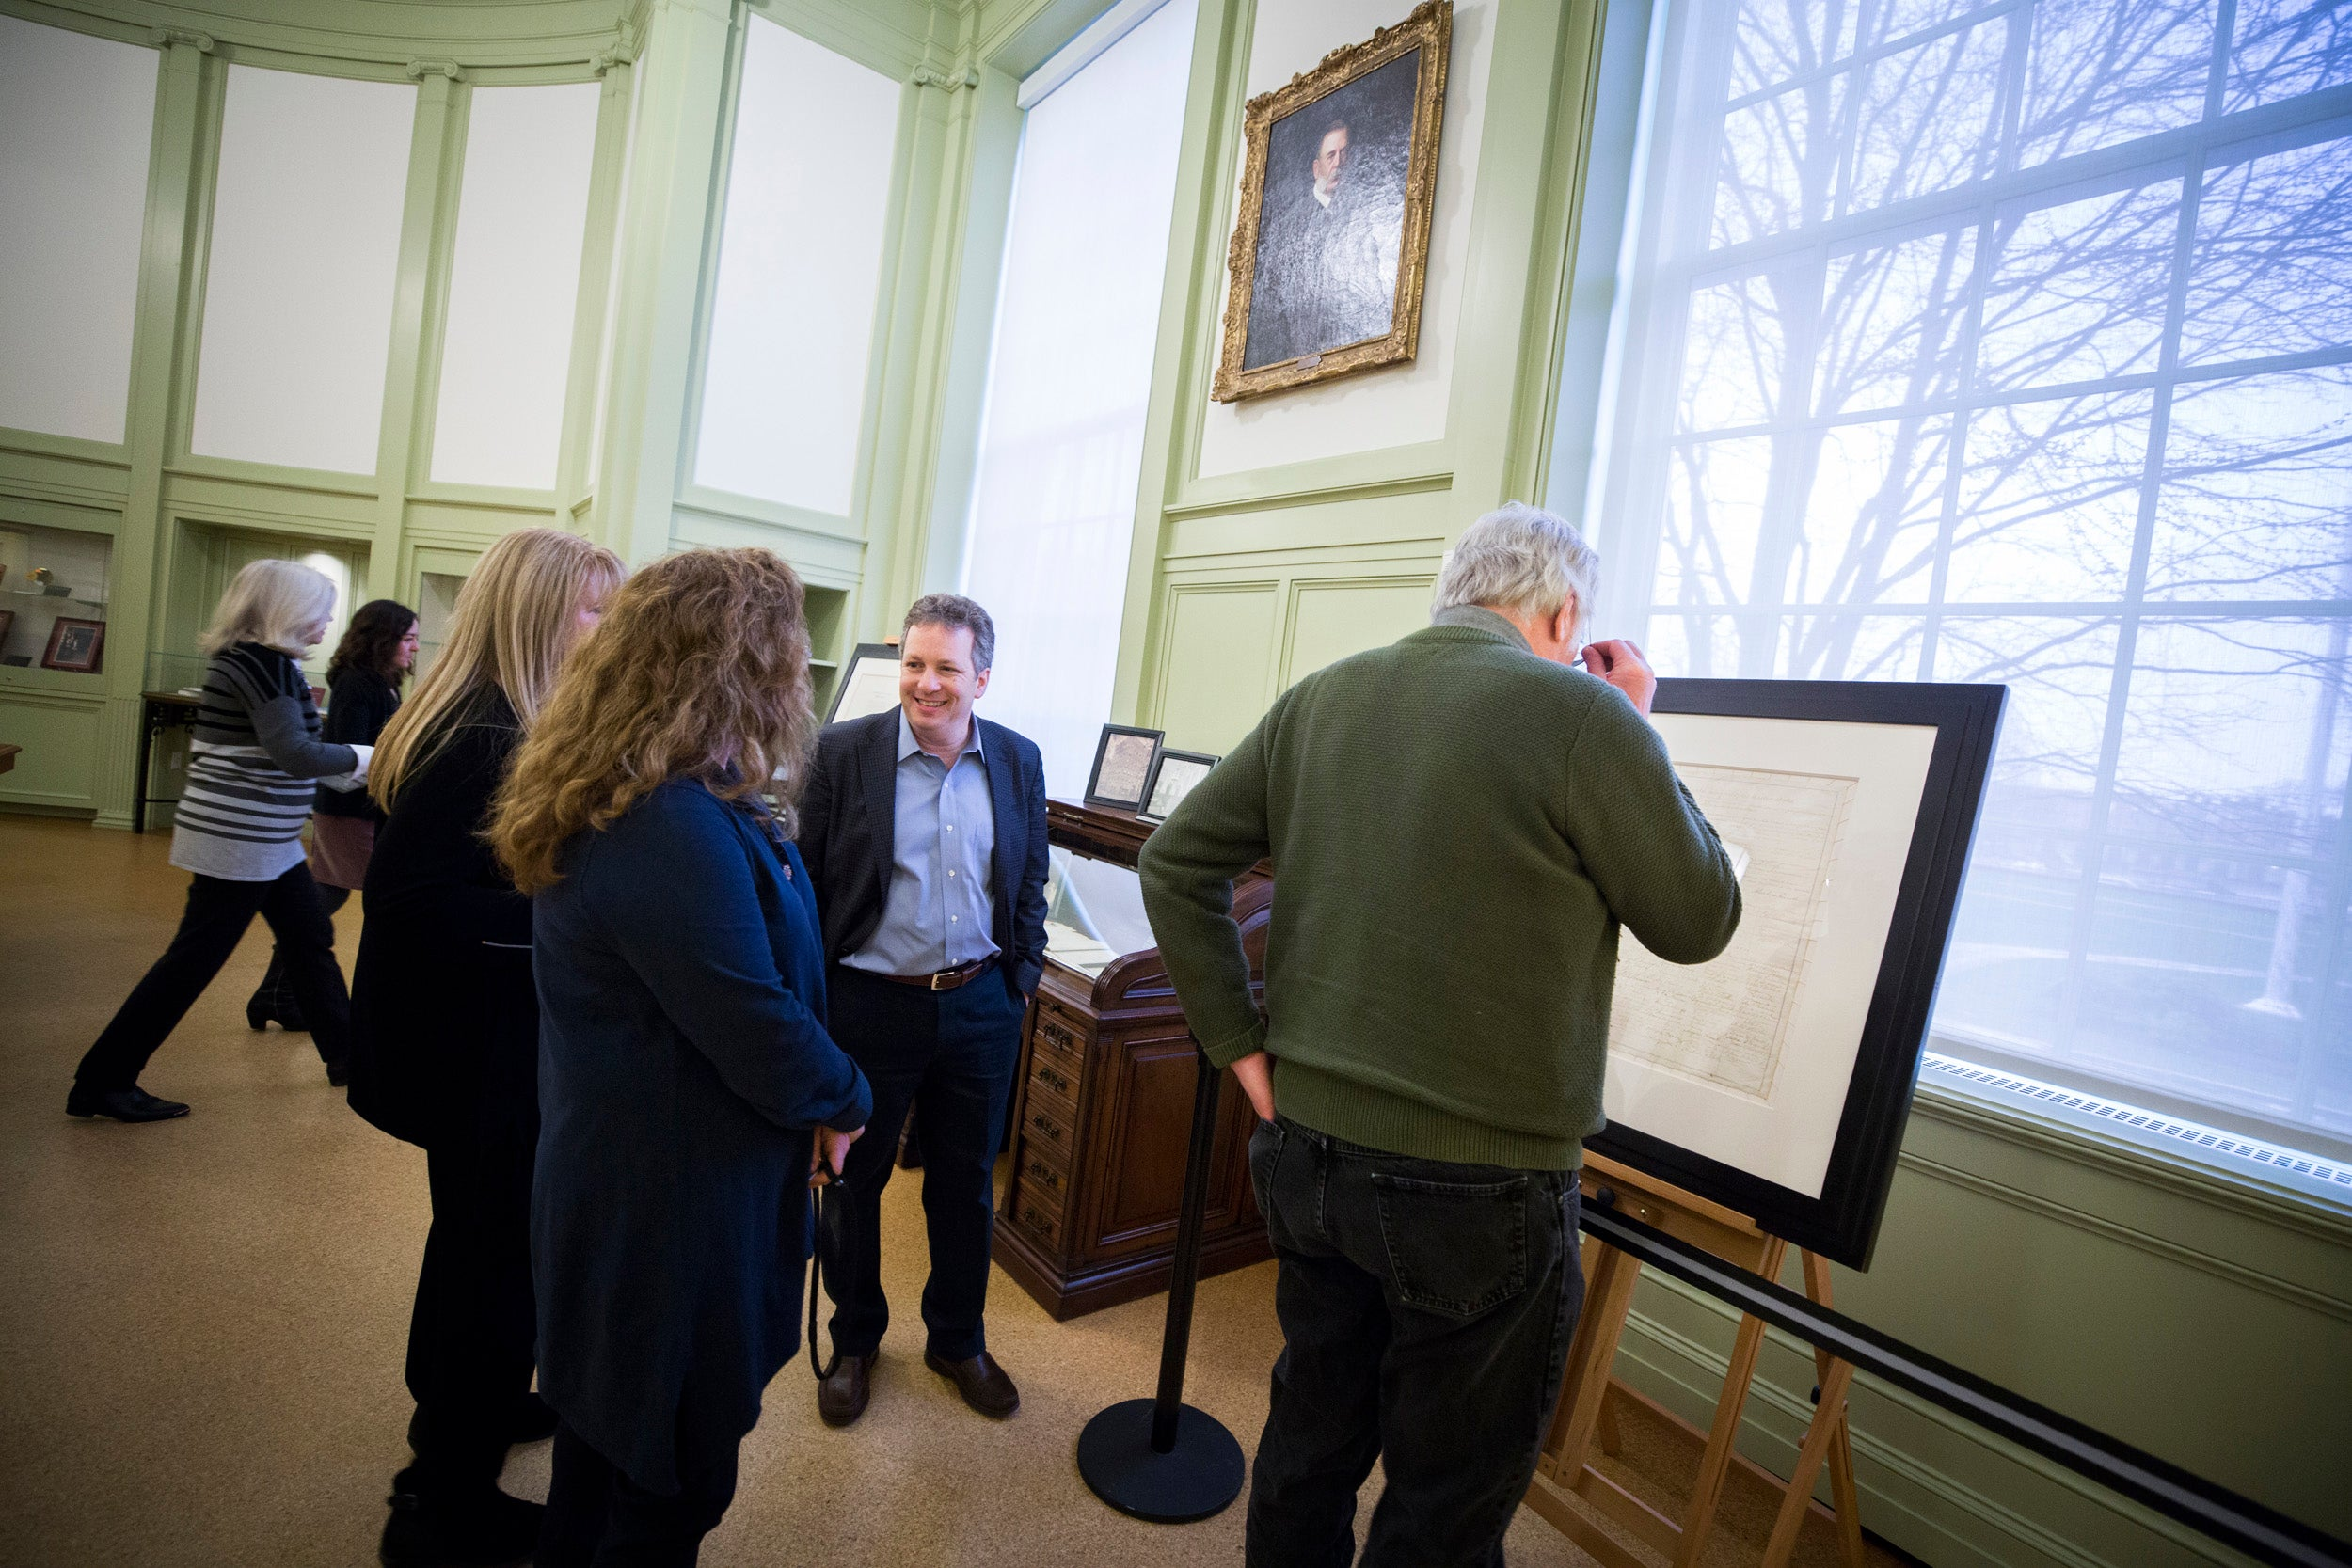 The Emancipation Proclamation was briefly on campus last week for a Baker Library exhibit.